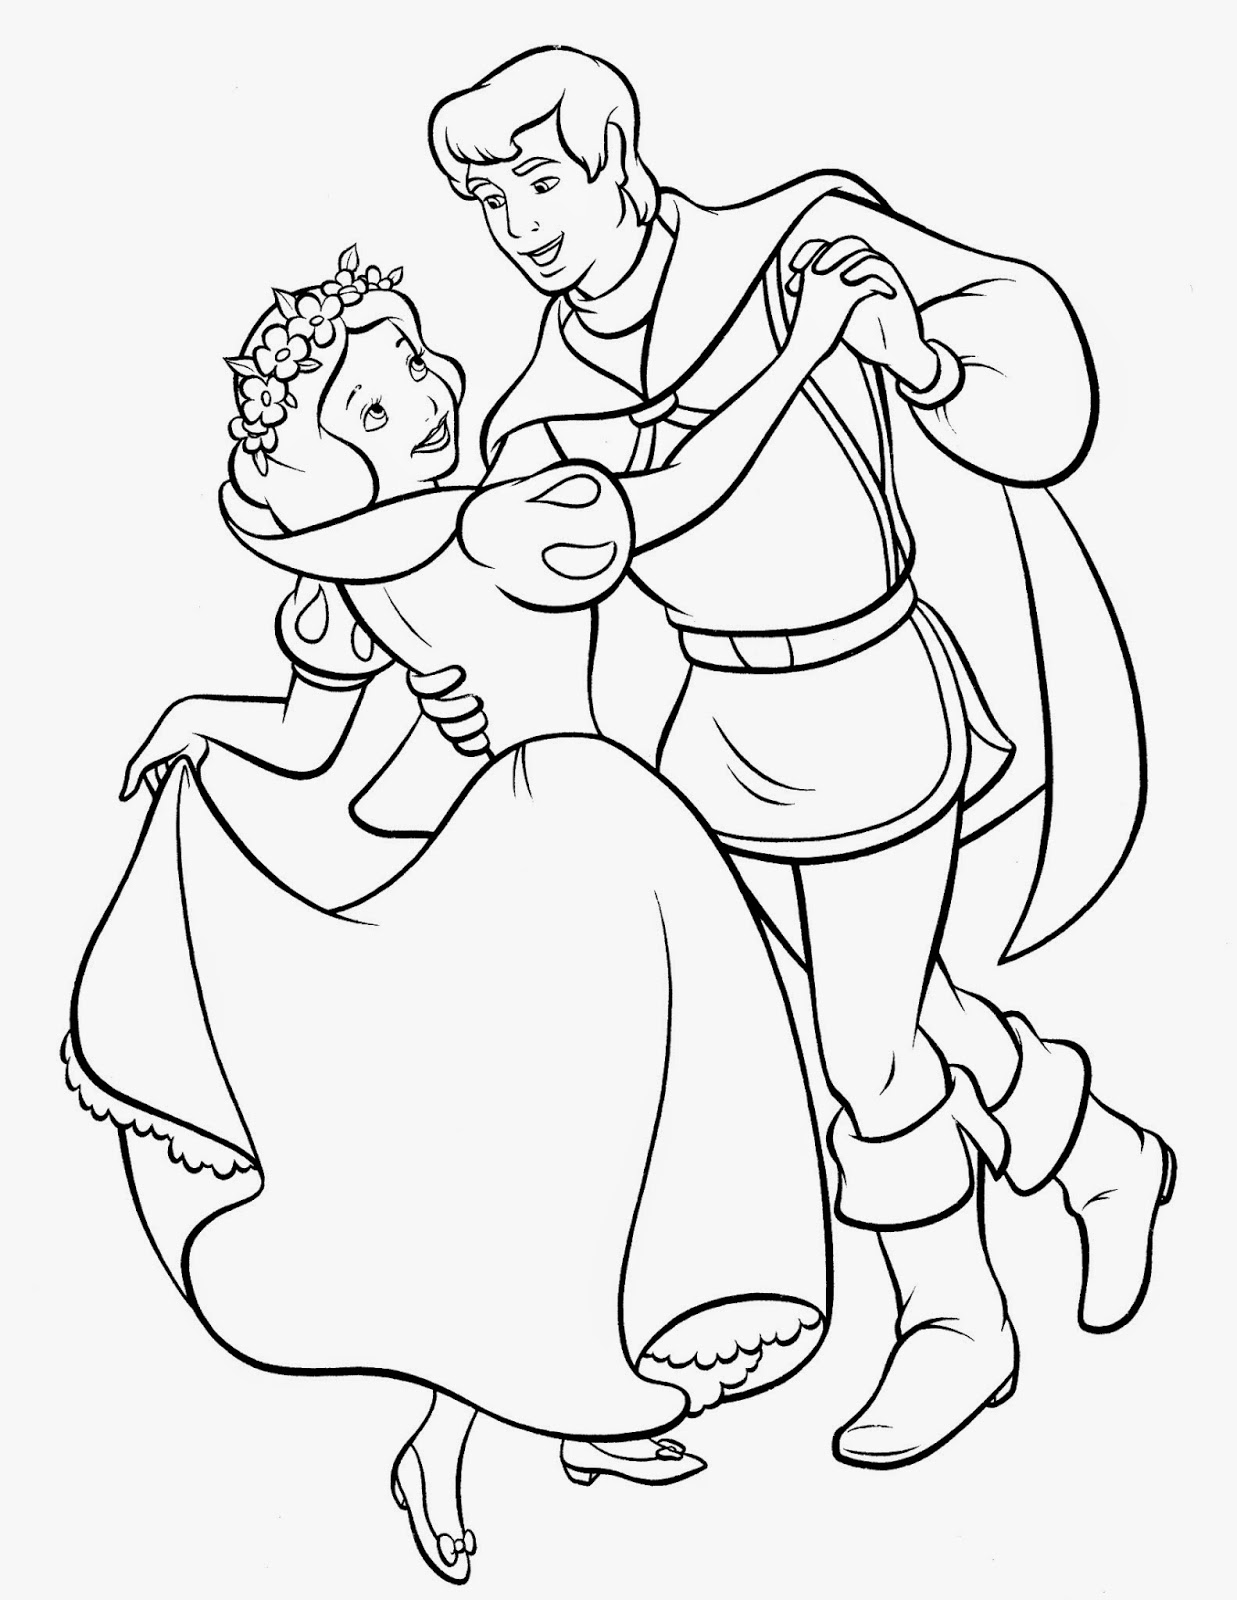 snpw white coloring pages   FUN & LEARN : Free worksheets for kid: ภาพระบายสี สโนว์ ...